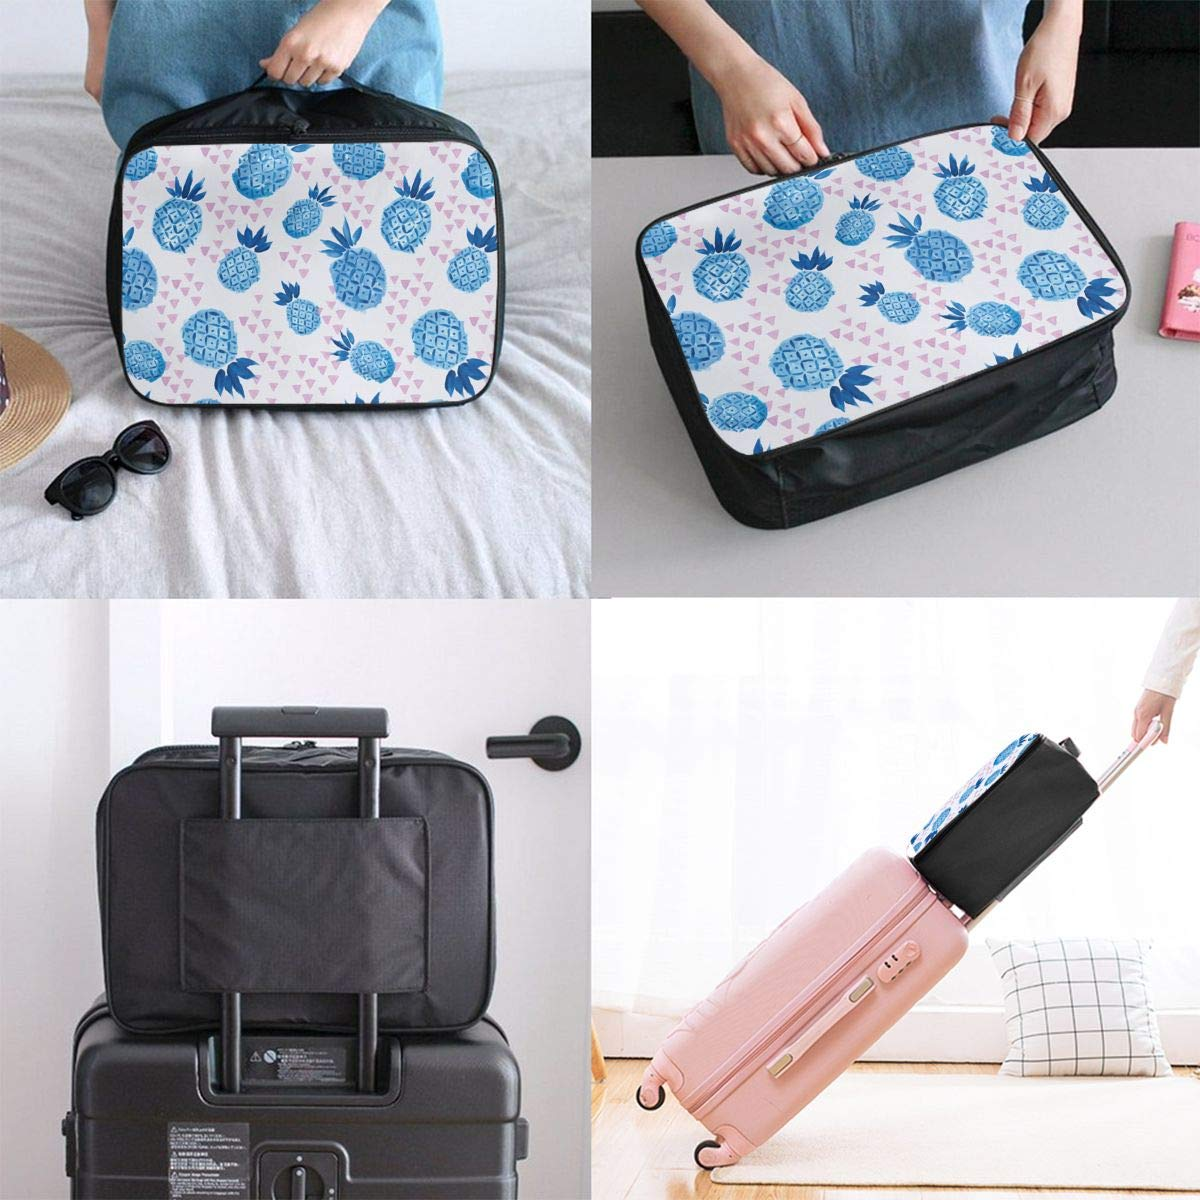 YueLJB Pineapple Blue Watercolor Lightweight Large Capacity Portable Luggage Bag Travel Duffel Bag Storage Carry Luggage Duffle Tote Bag